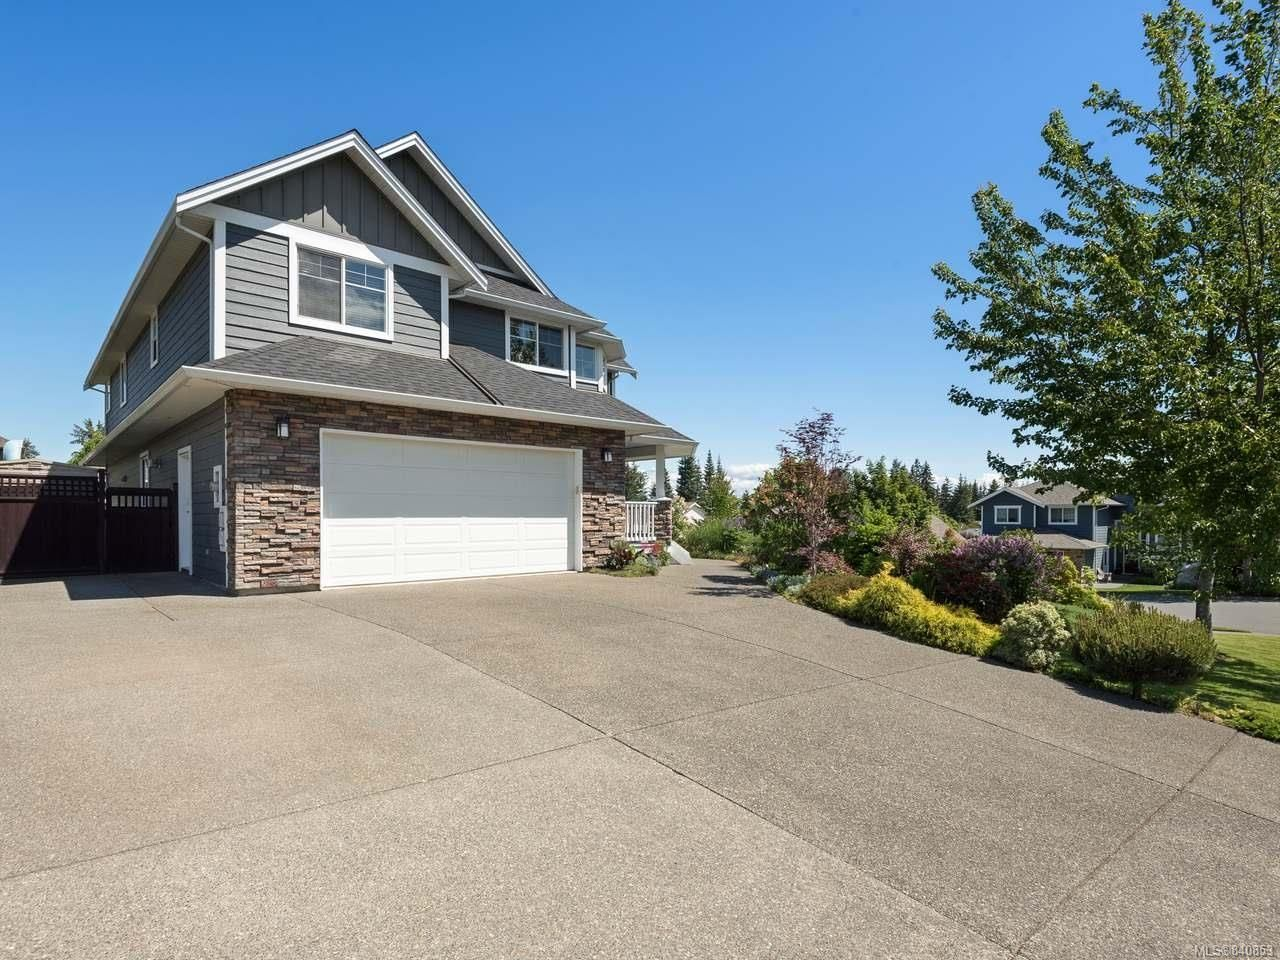 Photo 33: Photos: 206 Marie Pl in CAMPBELL RIVER: CR Willow Point House for sale (Campbell River)  : MLS®# 840853